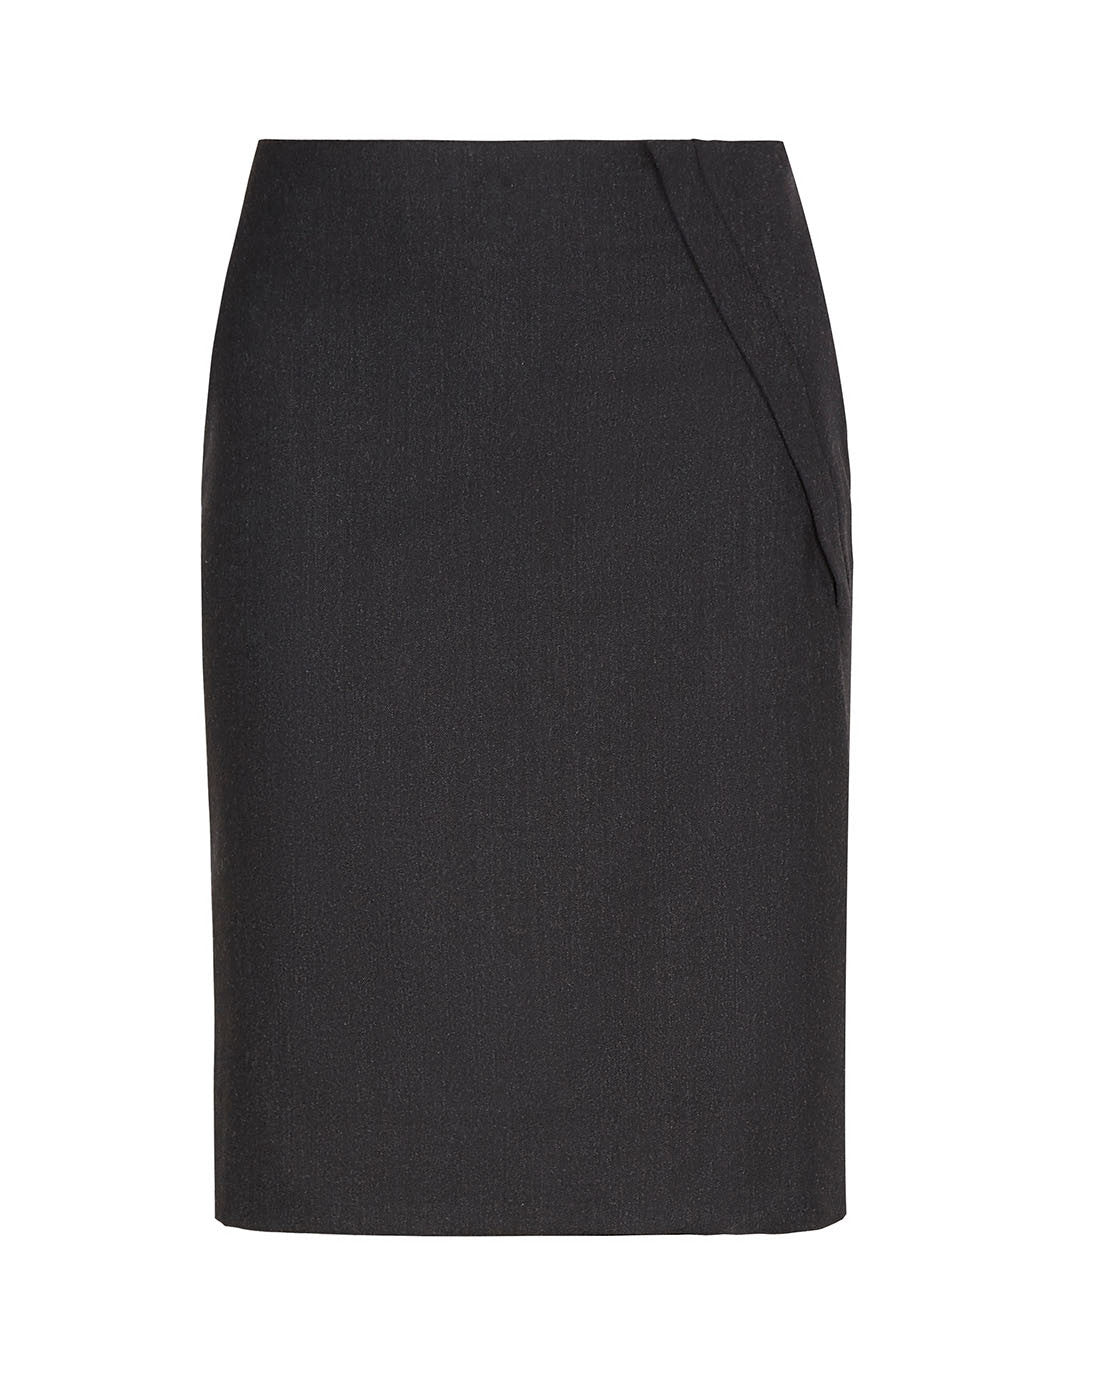 Luxury wool side split knee length pencil skirt for the office charcoal